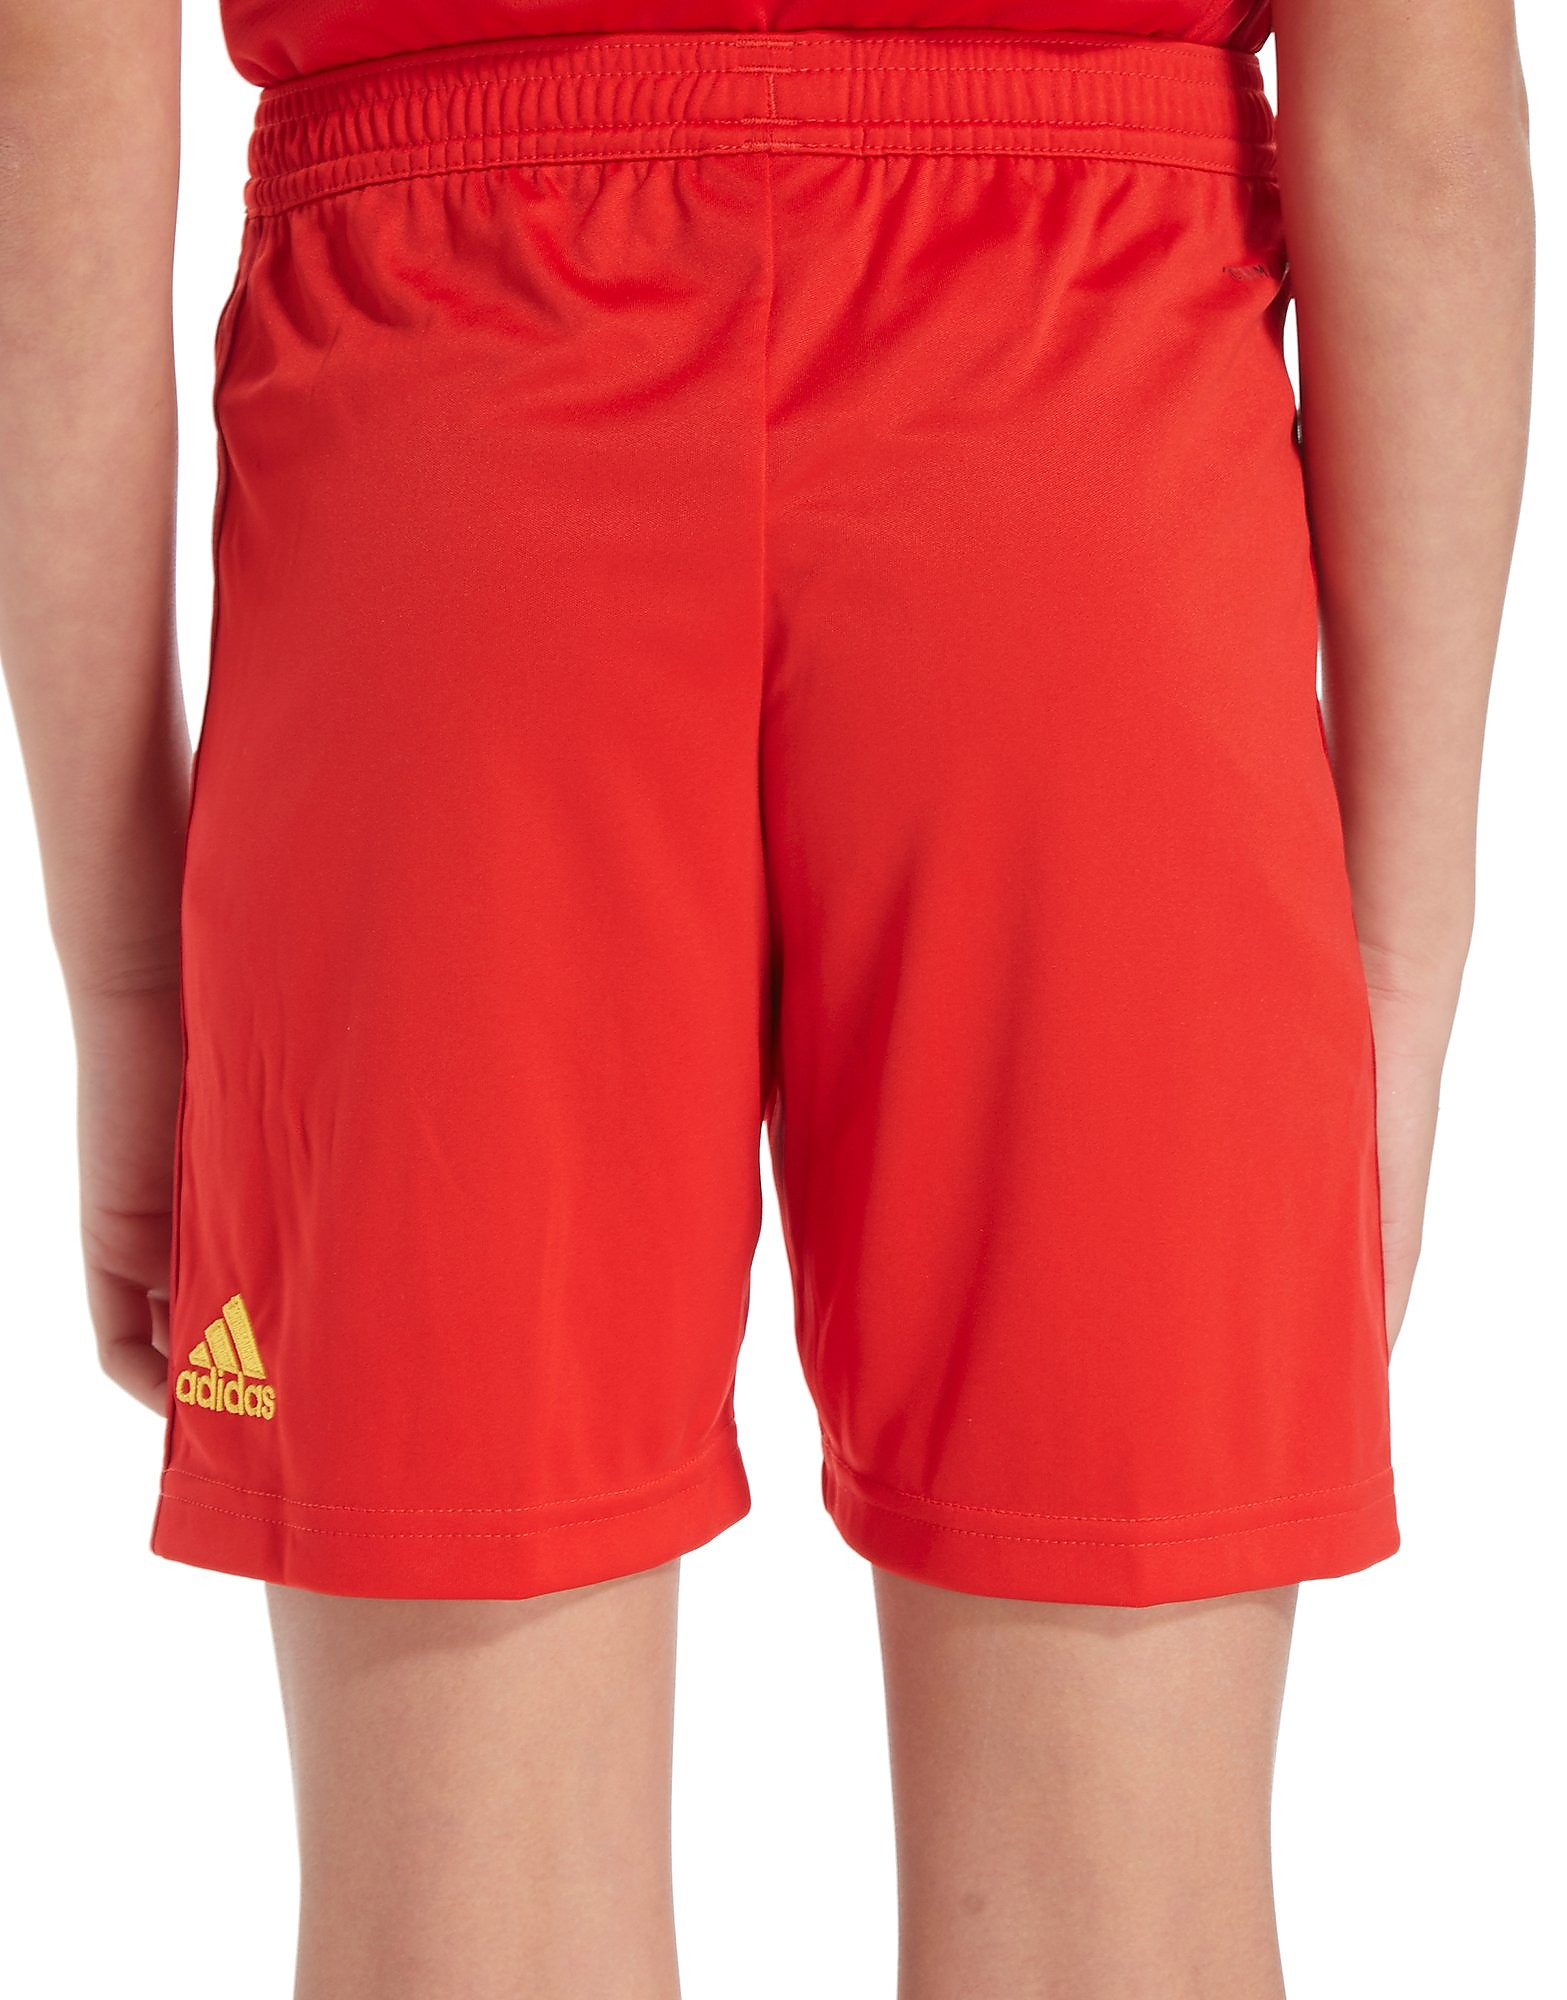 adidas Belgium 2017/18 Home Shorts Junior